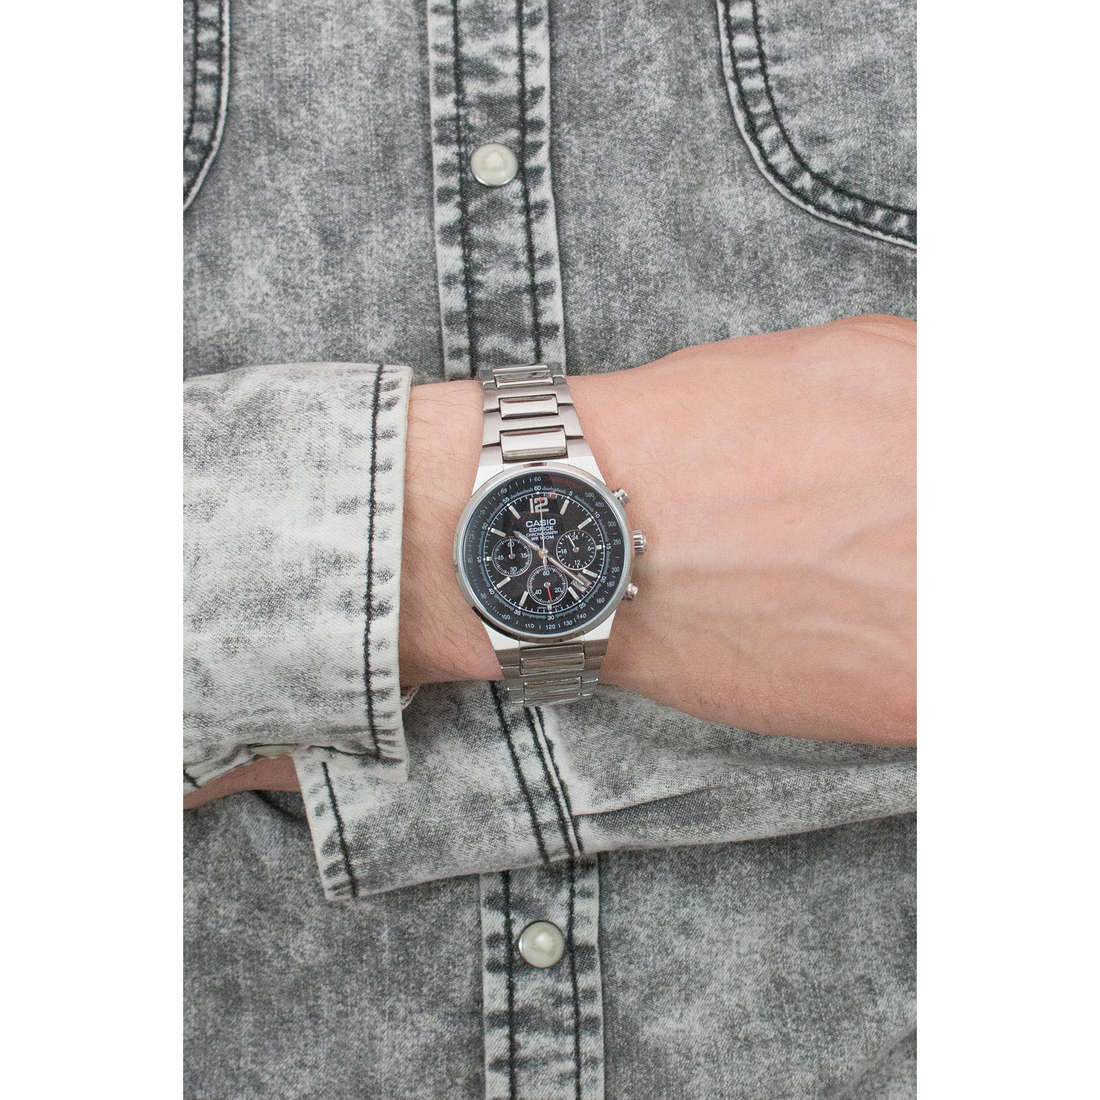 Casio chronographes Edifice homme EF-500D-1AVEF photo wearing